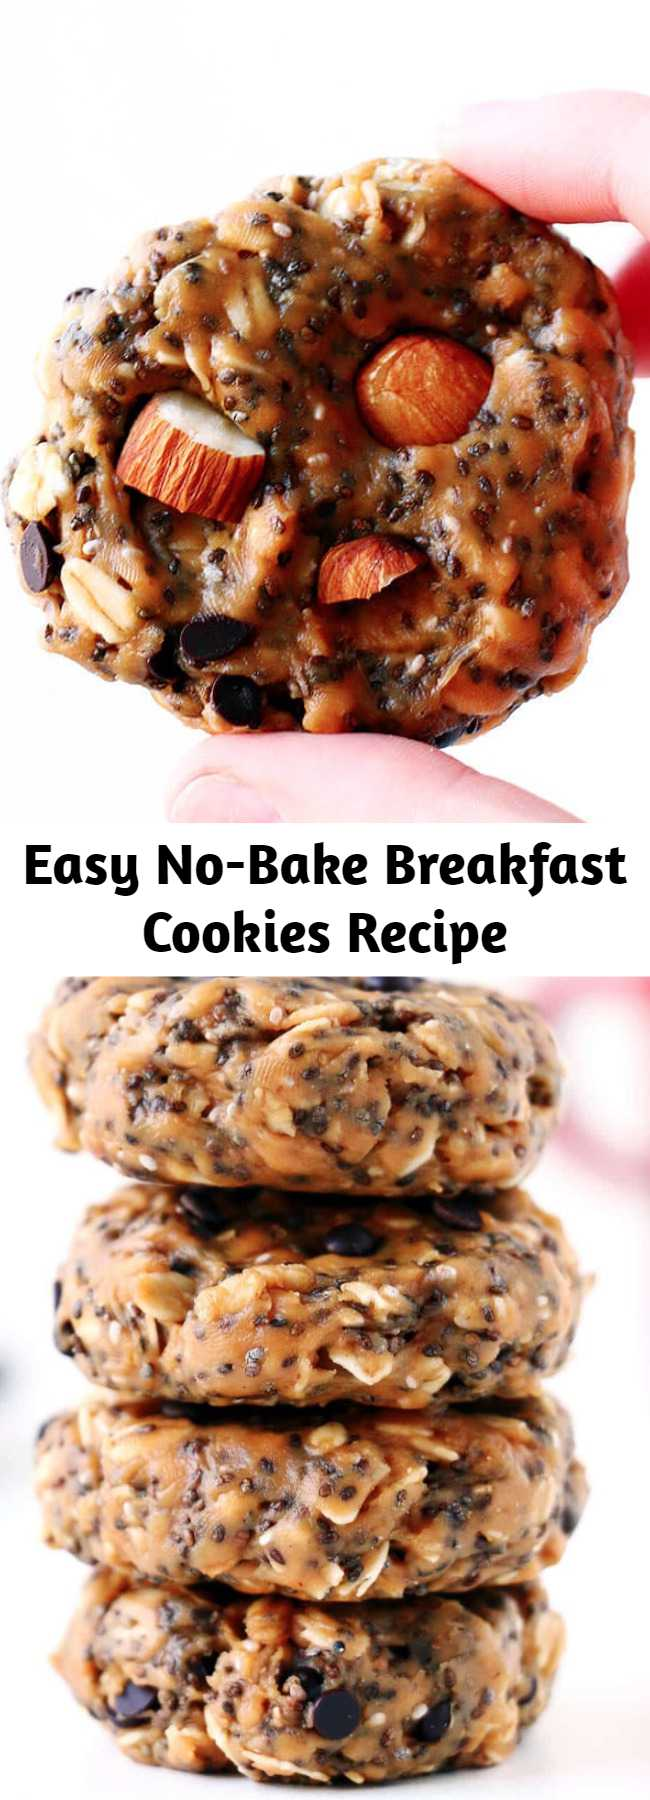 Easy No-Bake Breakfast Cookies Recipe - These No-Bake Breakfast Cookies are easy to make, healthy, packed with protein and simply delicious. They can be whipped up in less than 5 minutes and stored for up to two weeks. #breakfast #breakfastrecipes #breakfastideas #breakfastcookies #healthy #healthyrecipes #healtyfood #nobake #nobakecookies #snacks #snackideas #easyrecipe #recipes